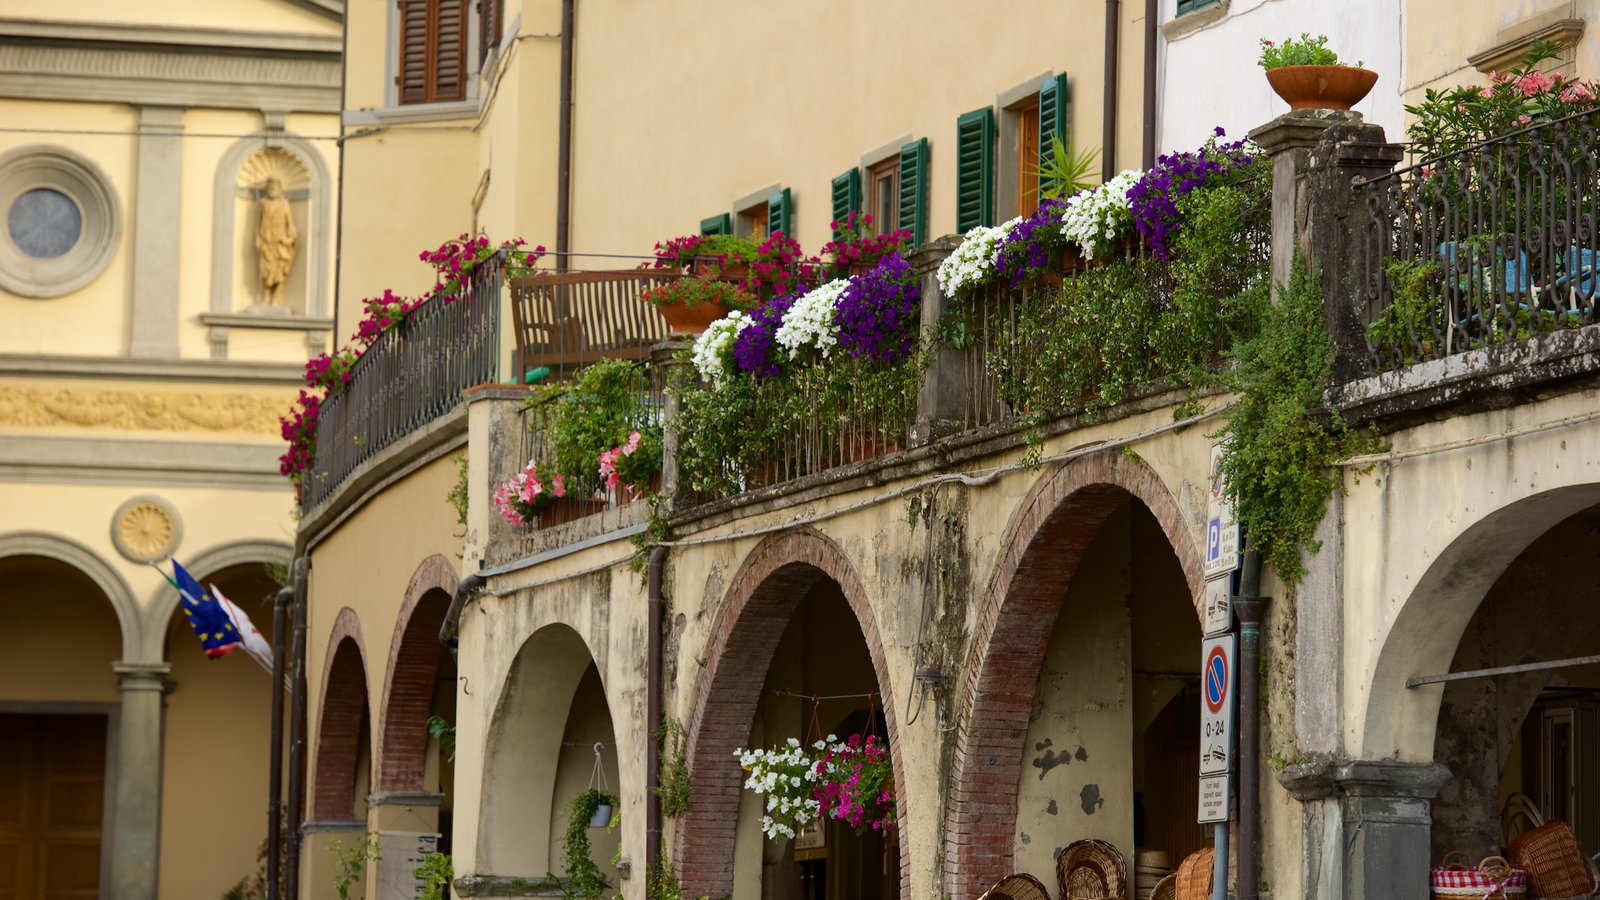 Greve in Chianti showing a small town or village and flowers